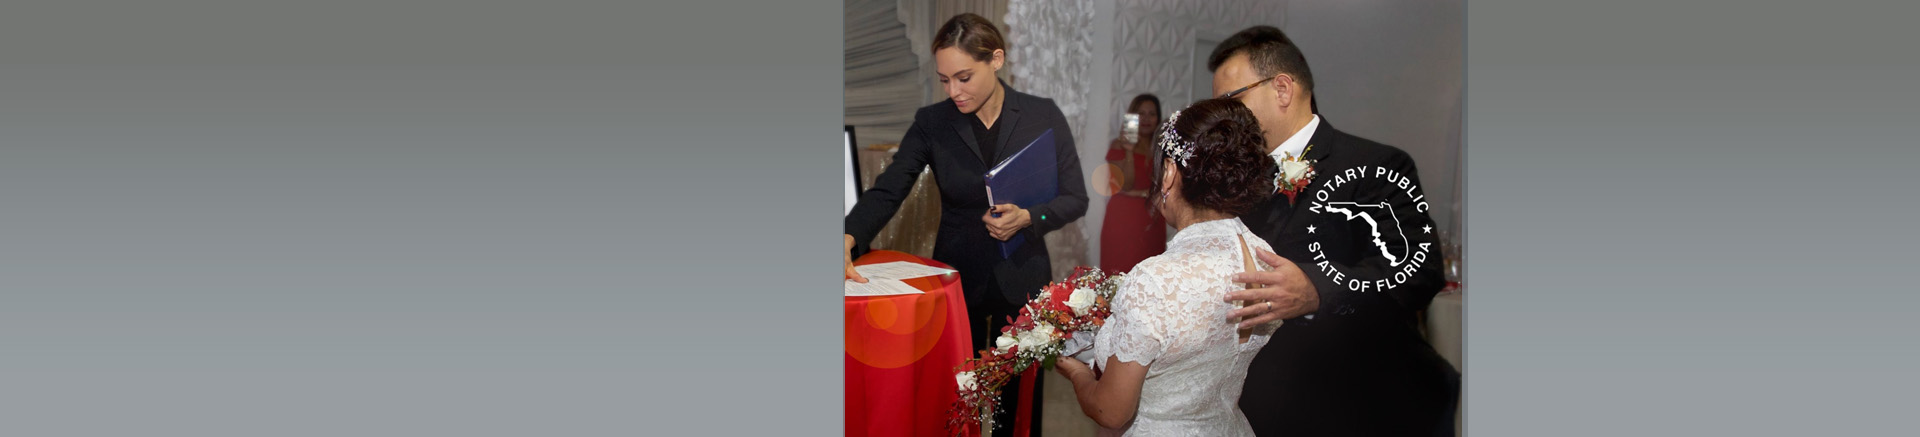 WEDDING OFFICIANT IN MIAMI